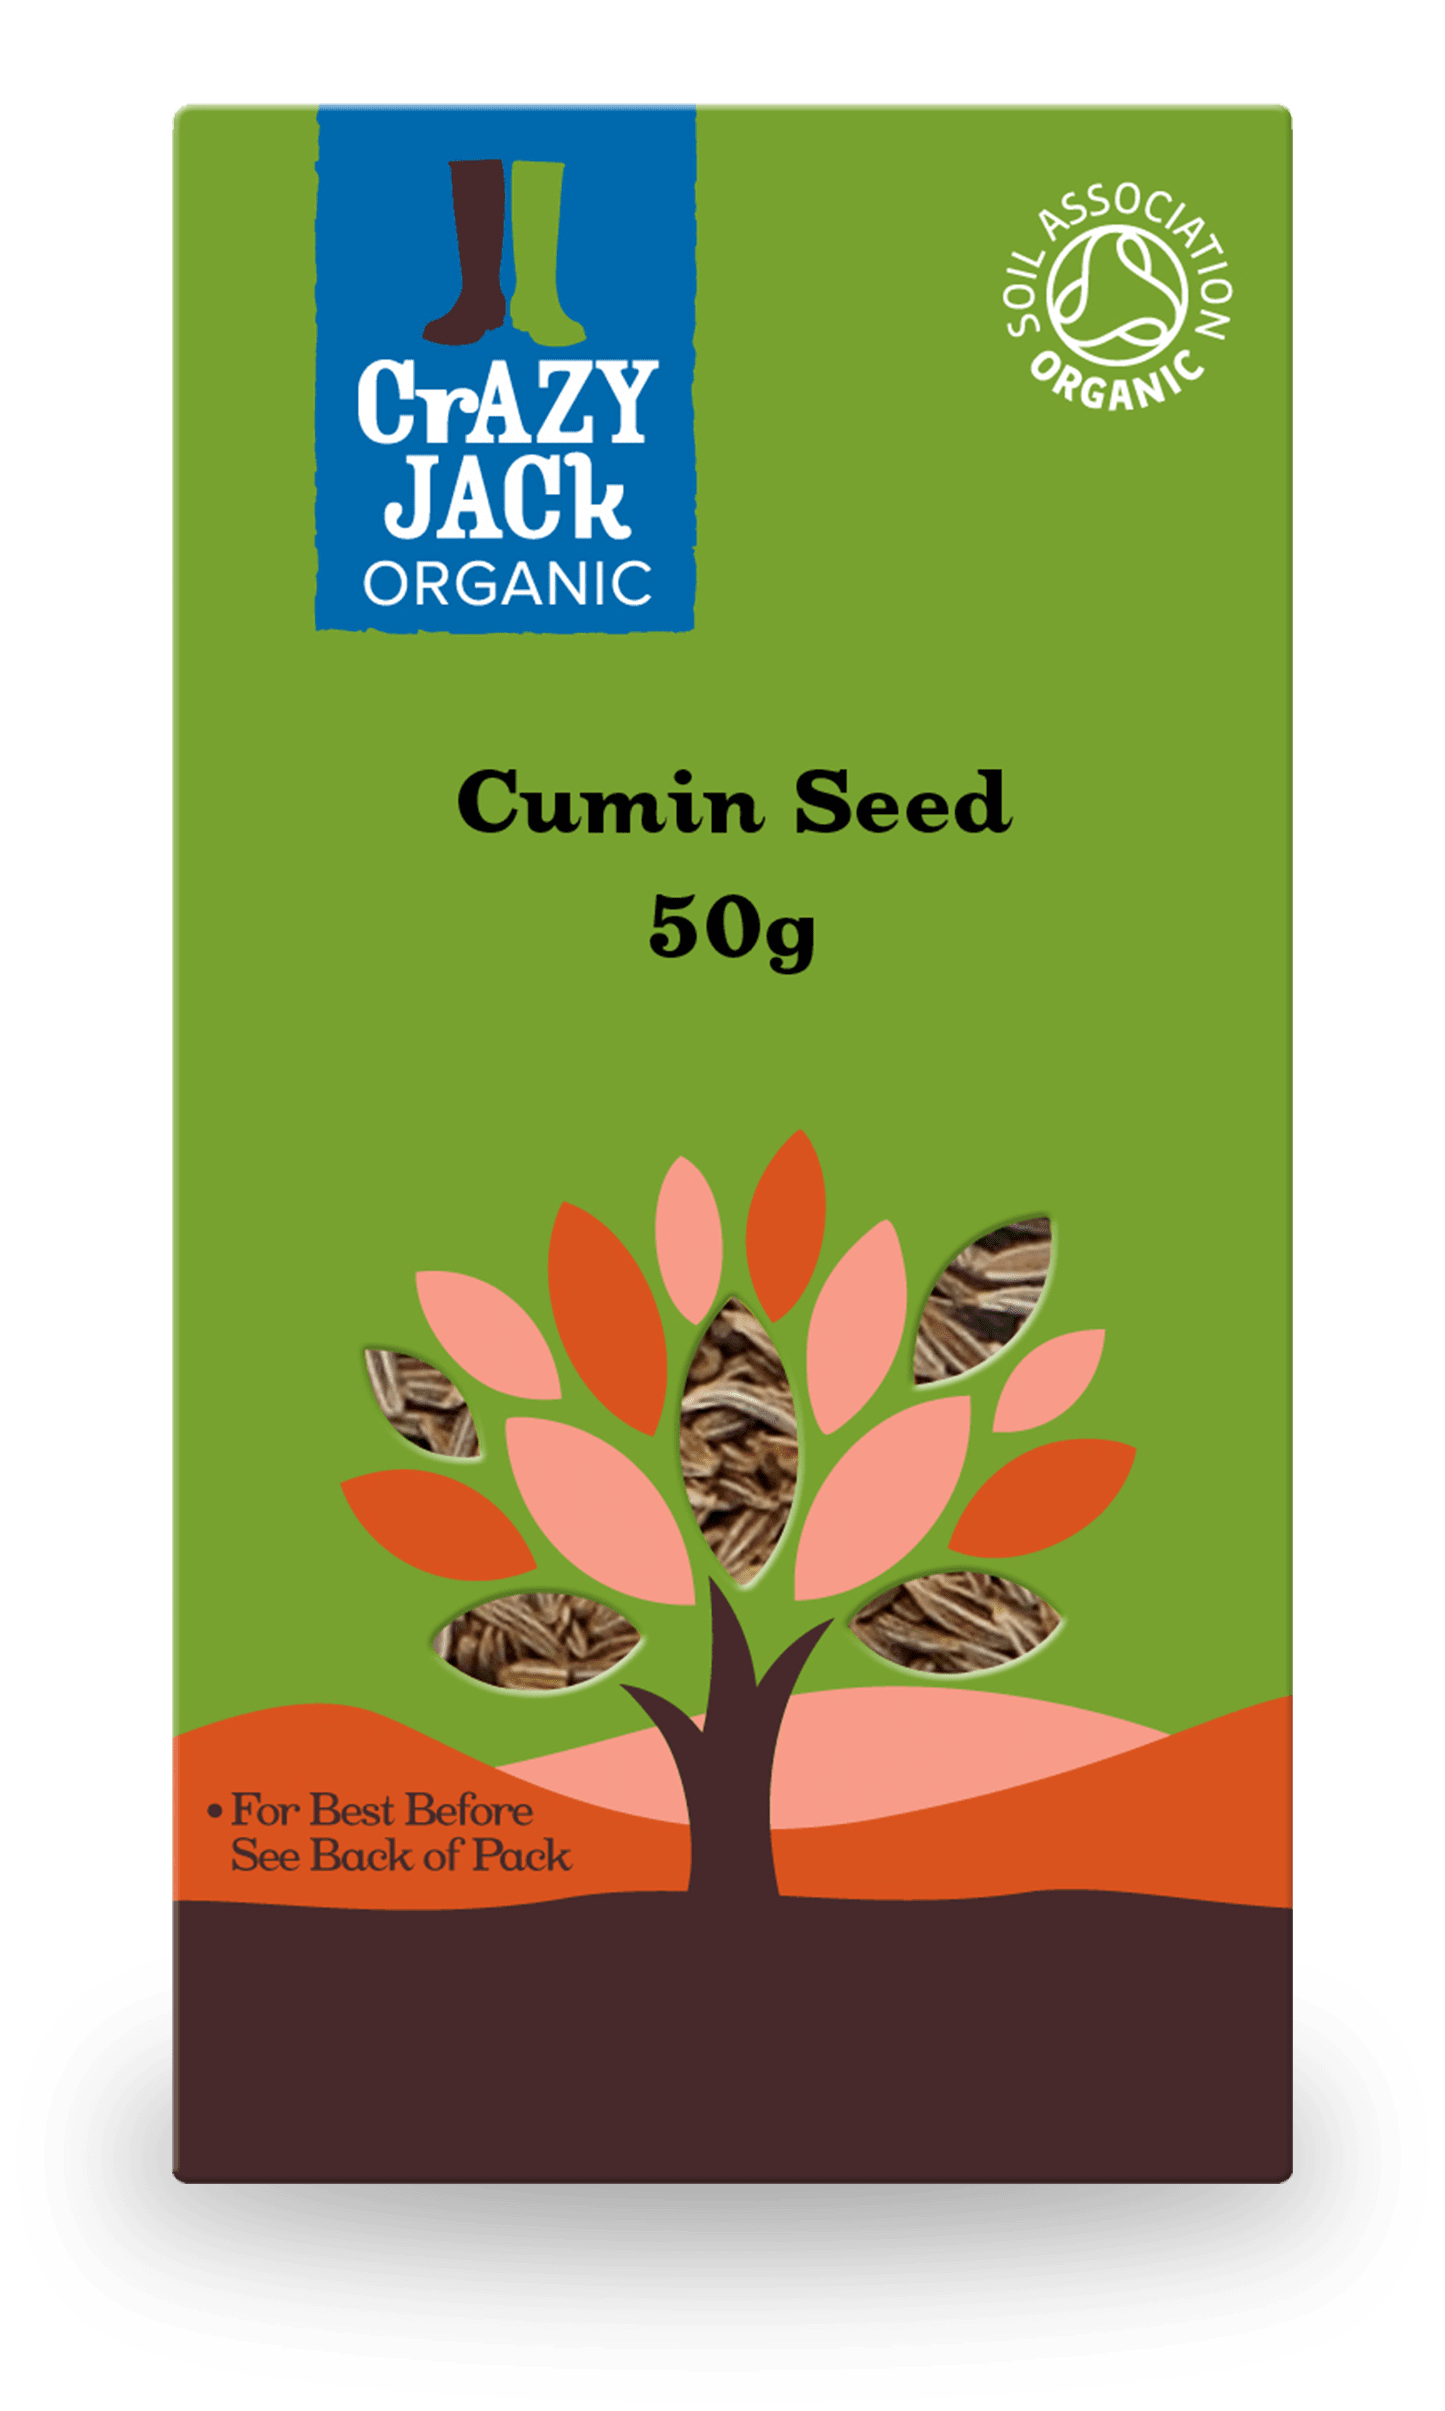 Packaging for 50g of cumin seed